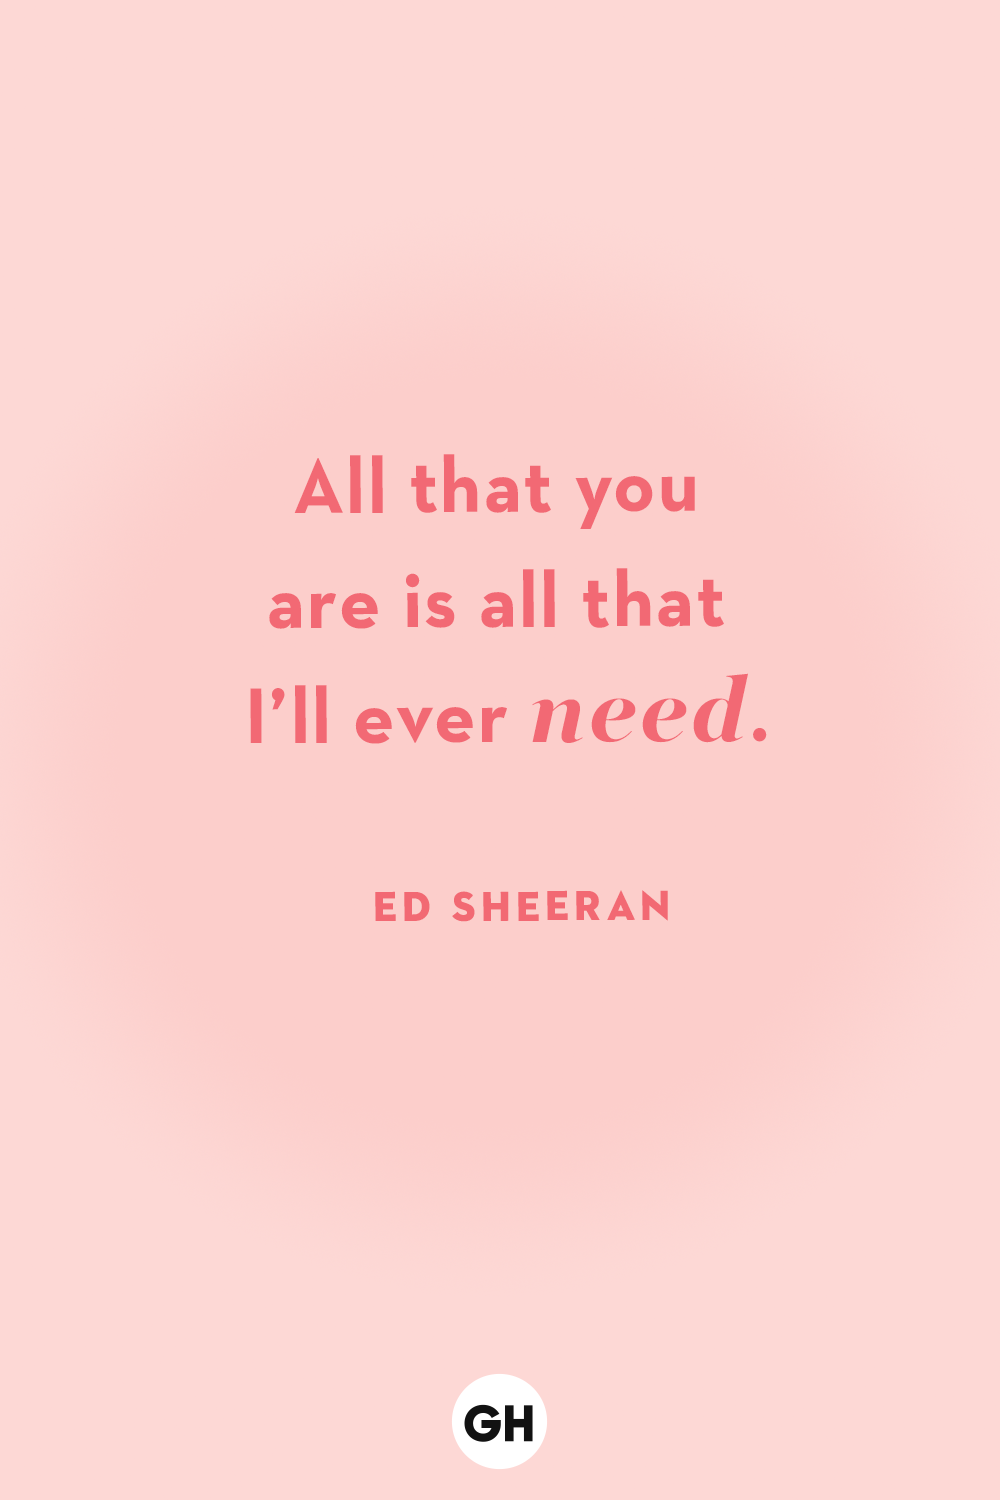 gh love quotes ed sheeran 0d